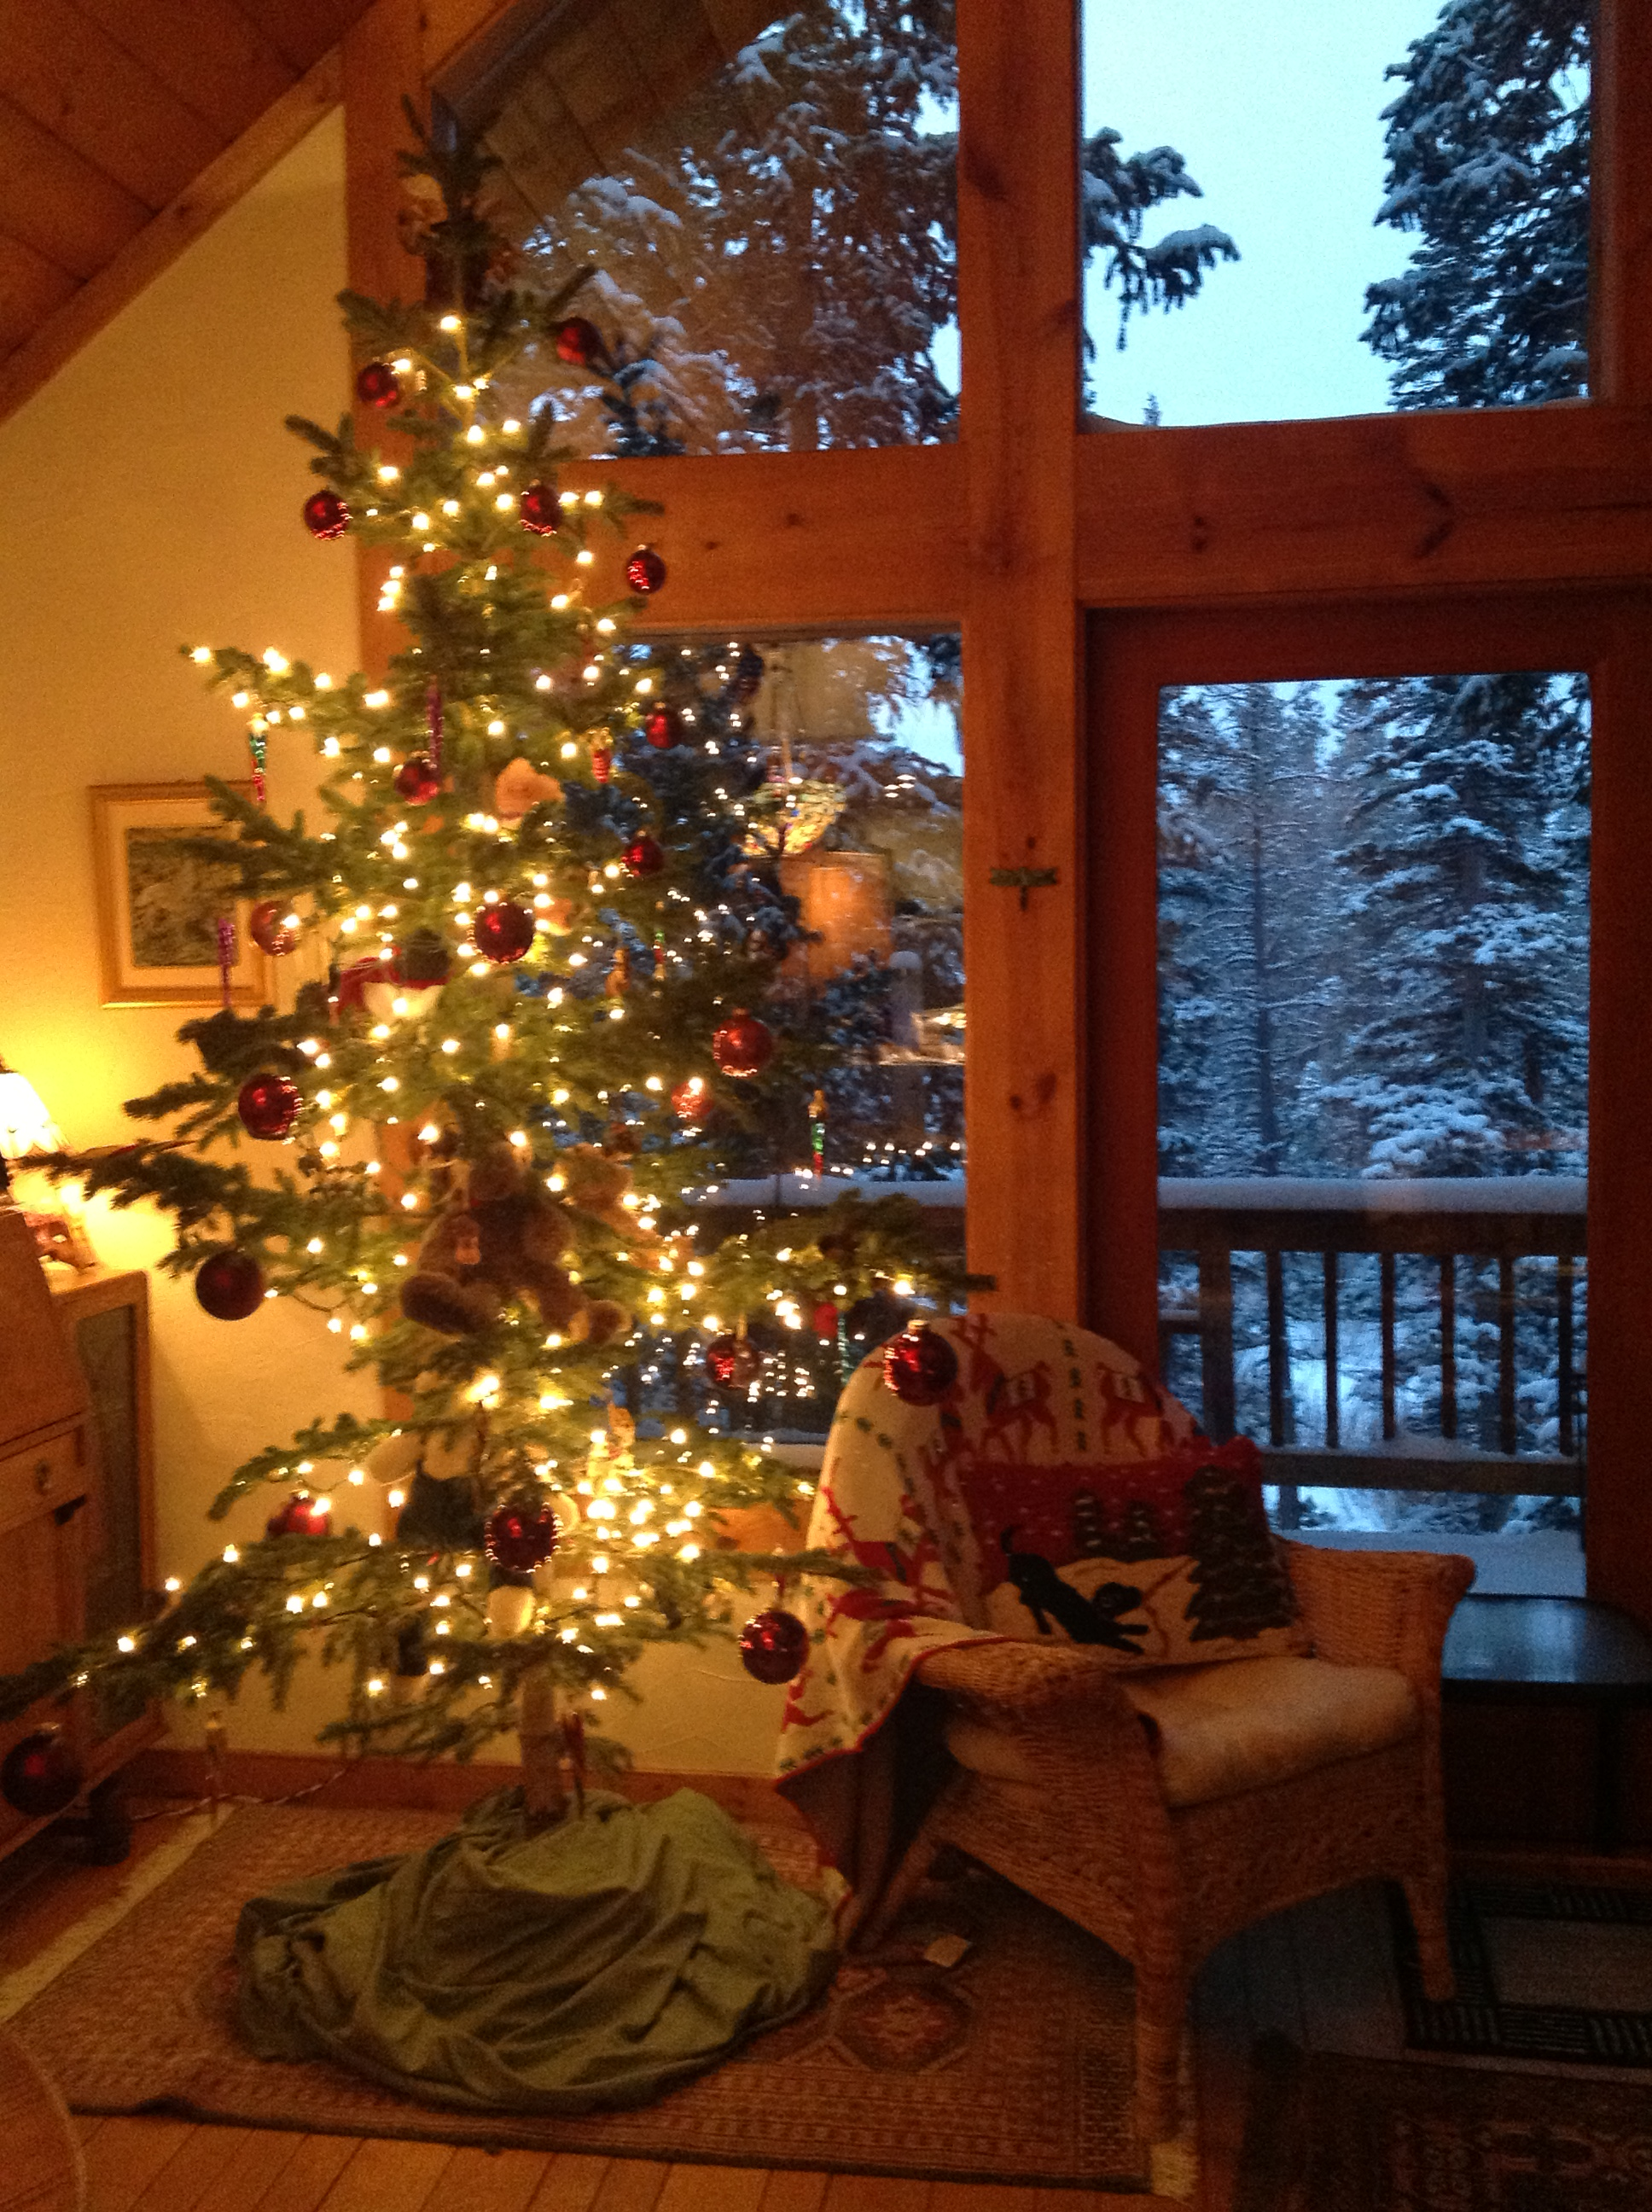 Christmas-Tree-with-Snow-Outside-the-Windows.